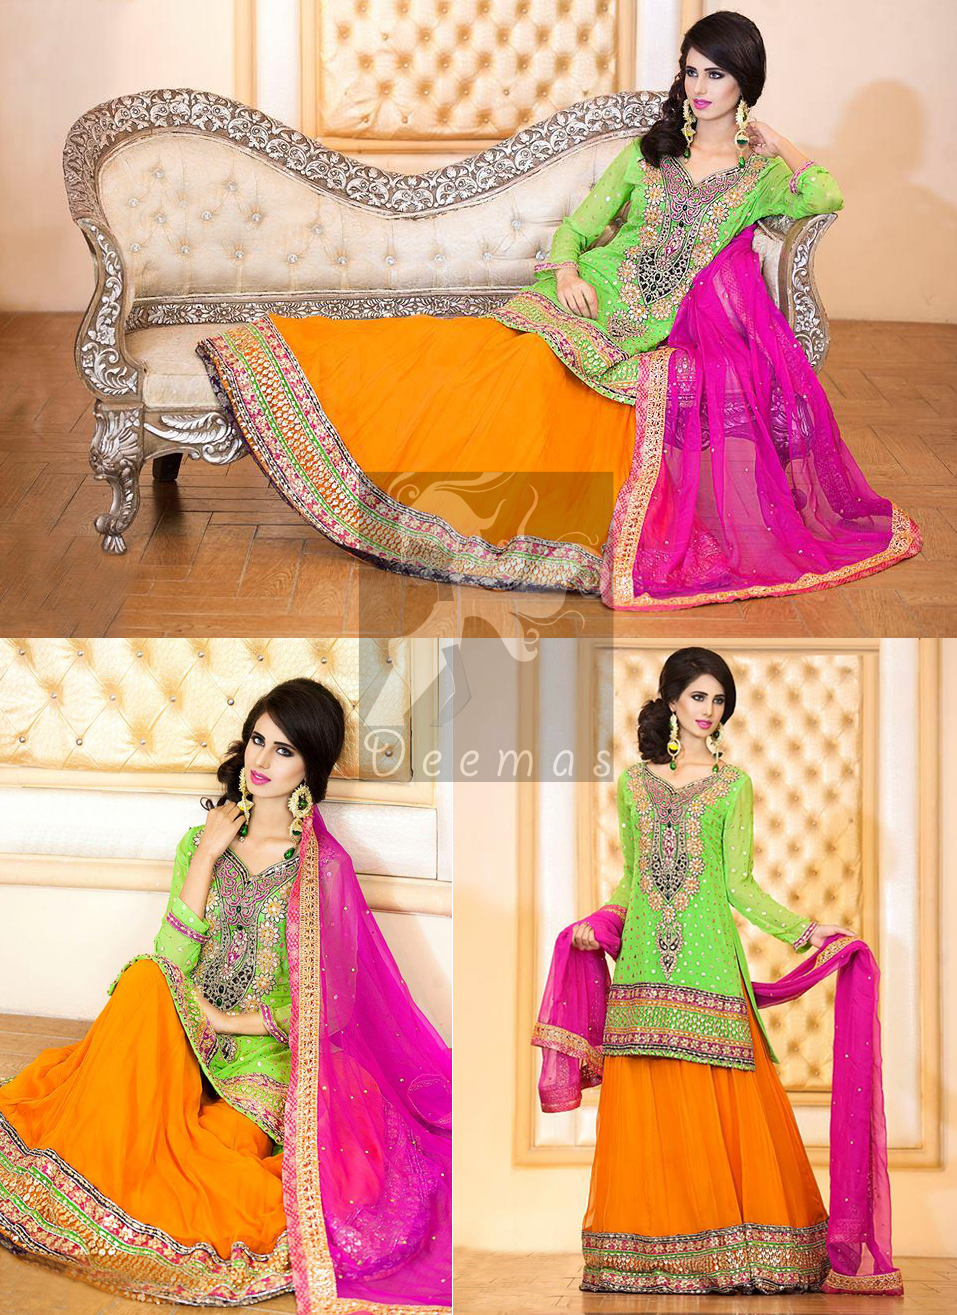 Bright Green Shirt With Orange Lehenga and Shocking Pink Dupatta. Best Dress for Mehndi Mayon Henna Function.